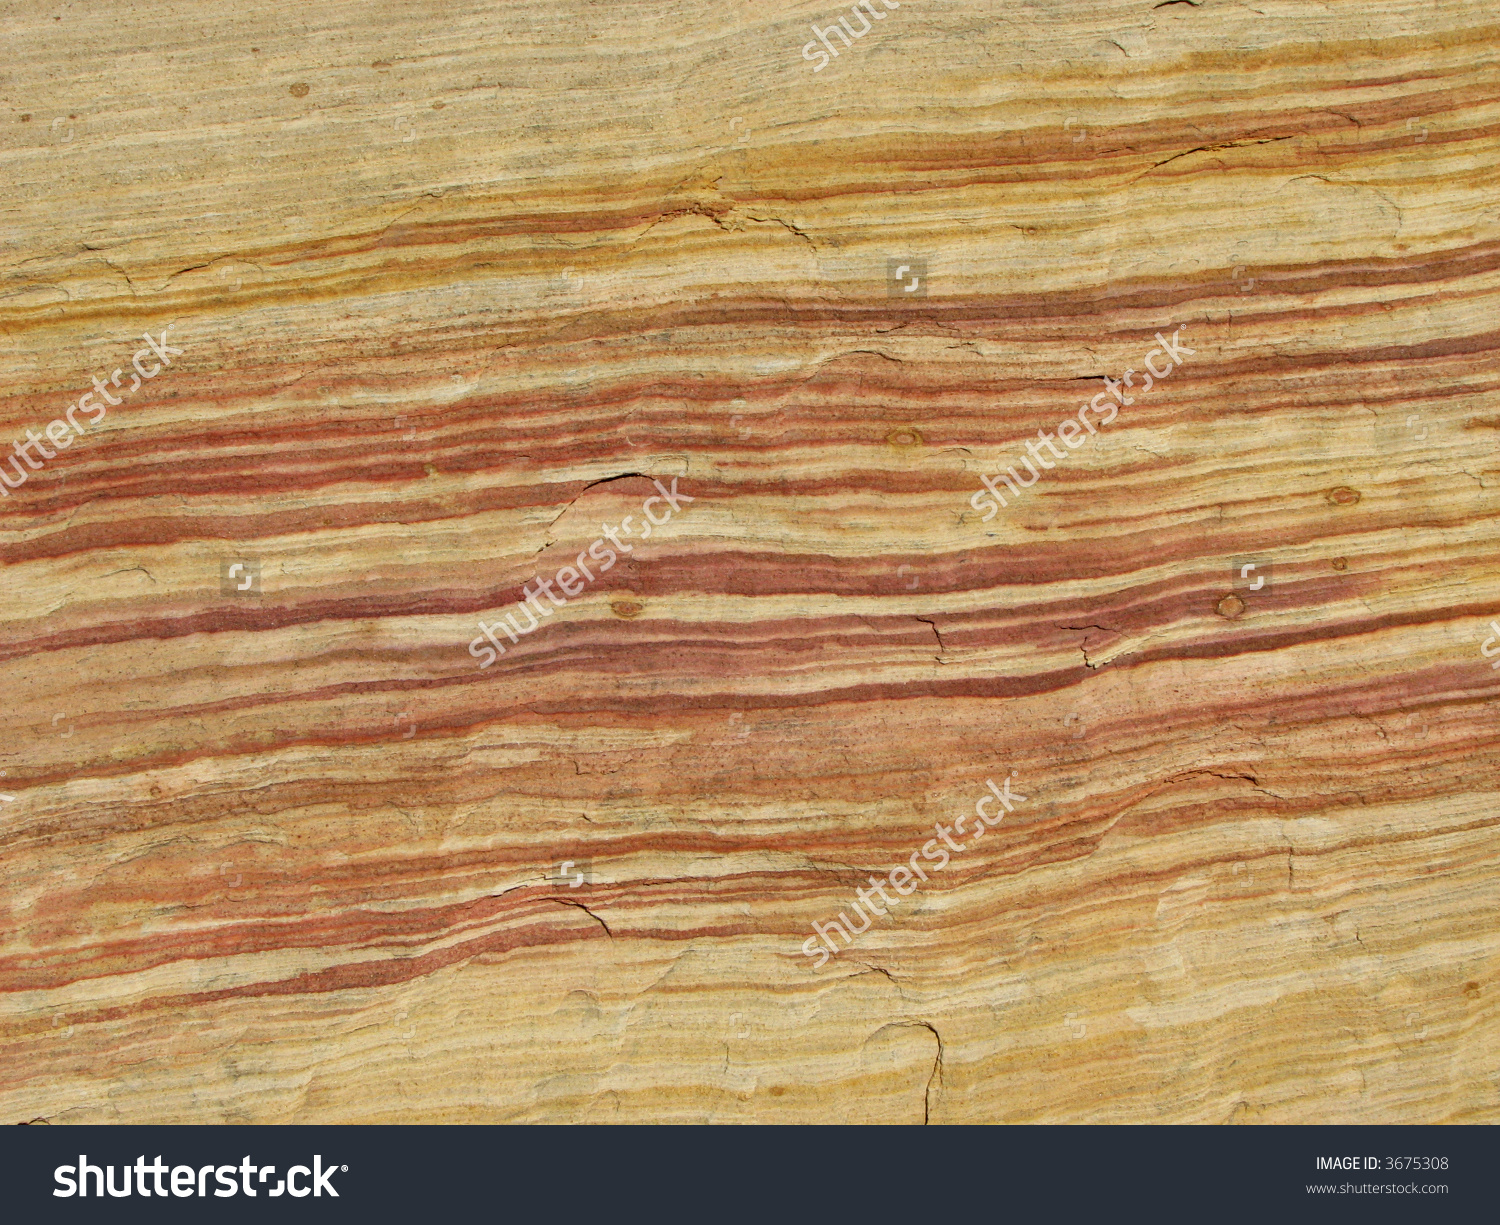 Colored Sandstone Bedding Layers On Rock Stock Photo 3675308.